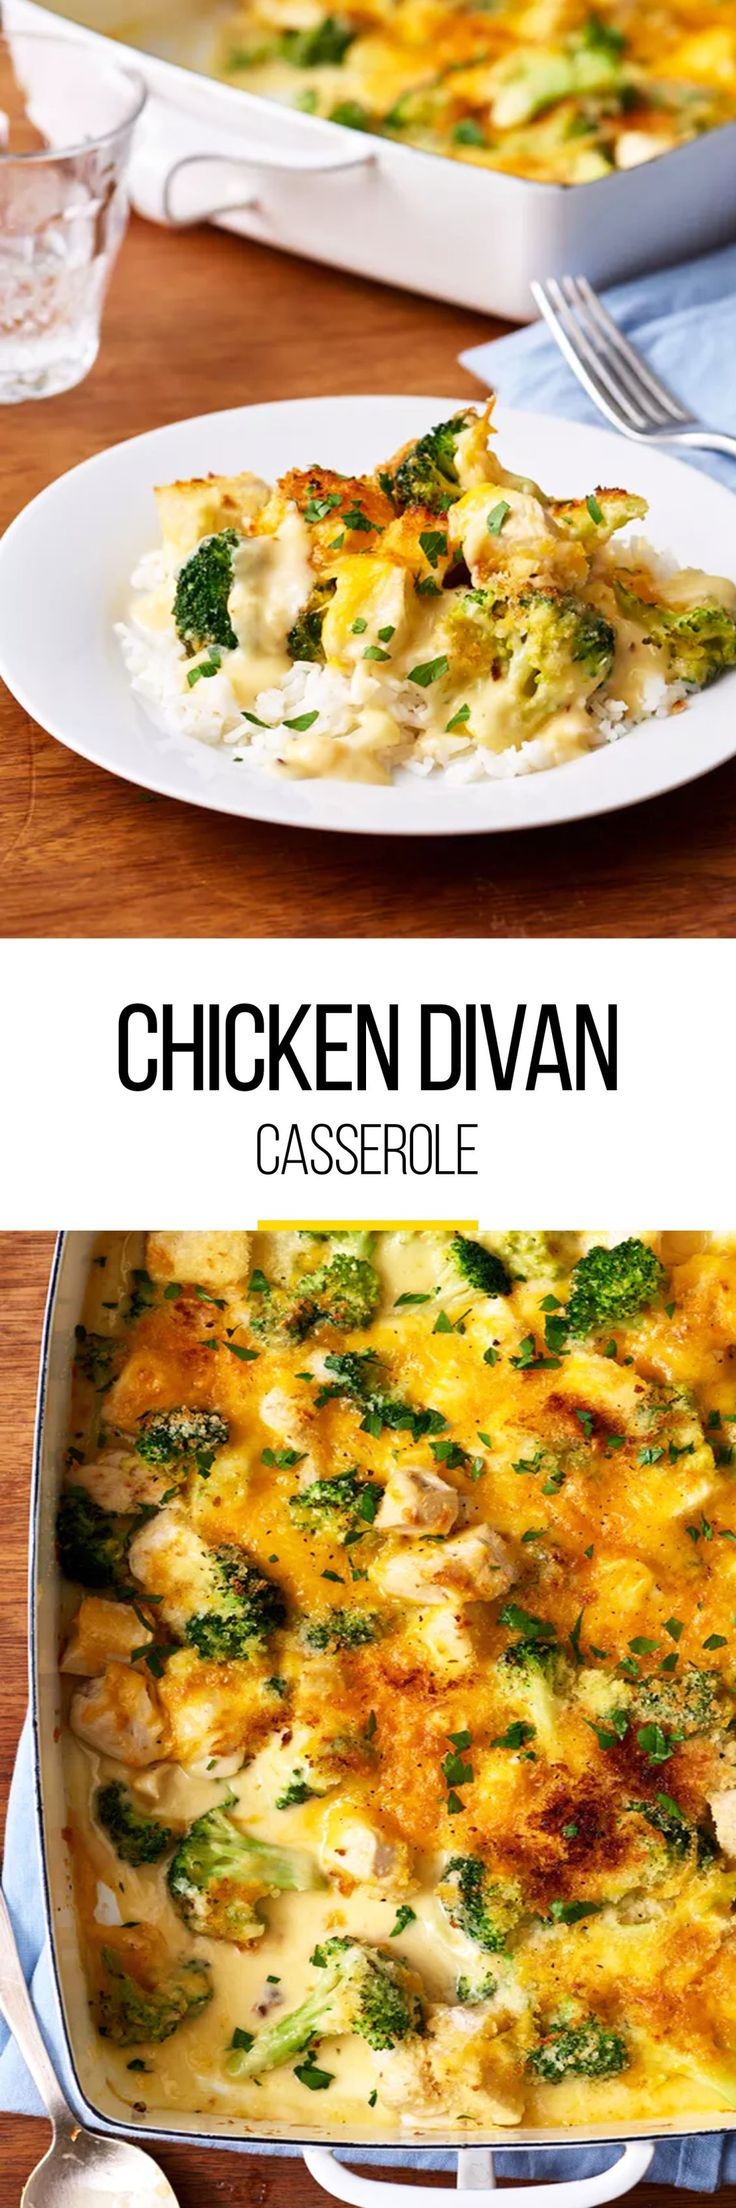 If you're craving more comfort food this fall, then this comforting cheesy chicken and broccoli casserole recipe is just the thing. Not only is this a comfort dish, but also a quick weeknight meal. This easy casserole calls for bag frozen broccoli florets, unsalted butter, all-purpose flour, low-sodium chicken broth, whole milk, shredded sharp cheddar cheese, cream sherry, kosher salt, ground black pepper, cubed cooked chicken, panko breadcrumbs and optional use of Parsley.